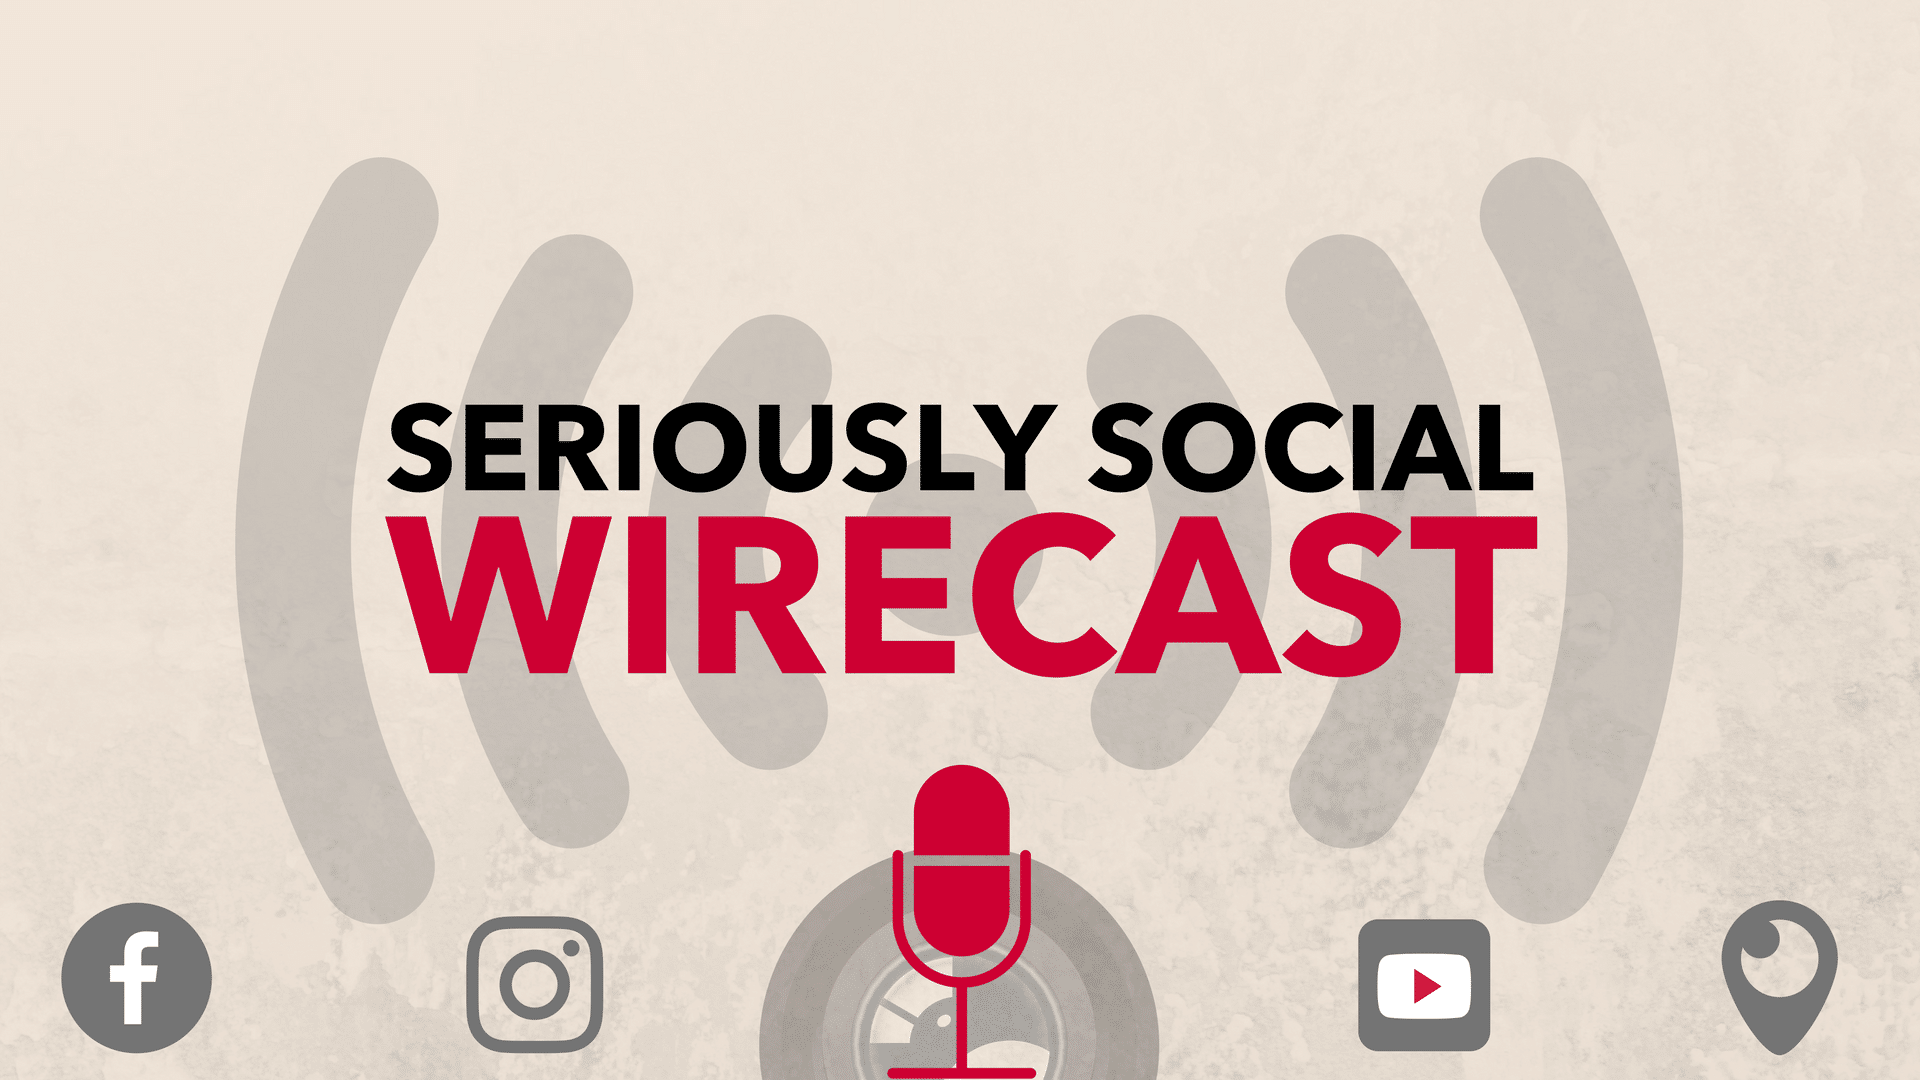 Seriously Social Wirecast Course - Get up & Running with